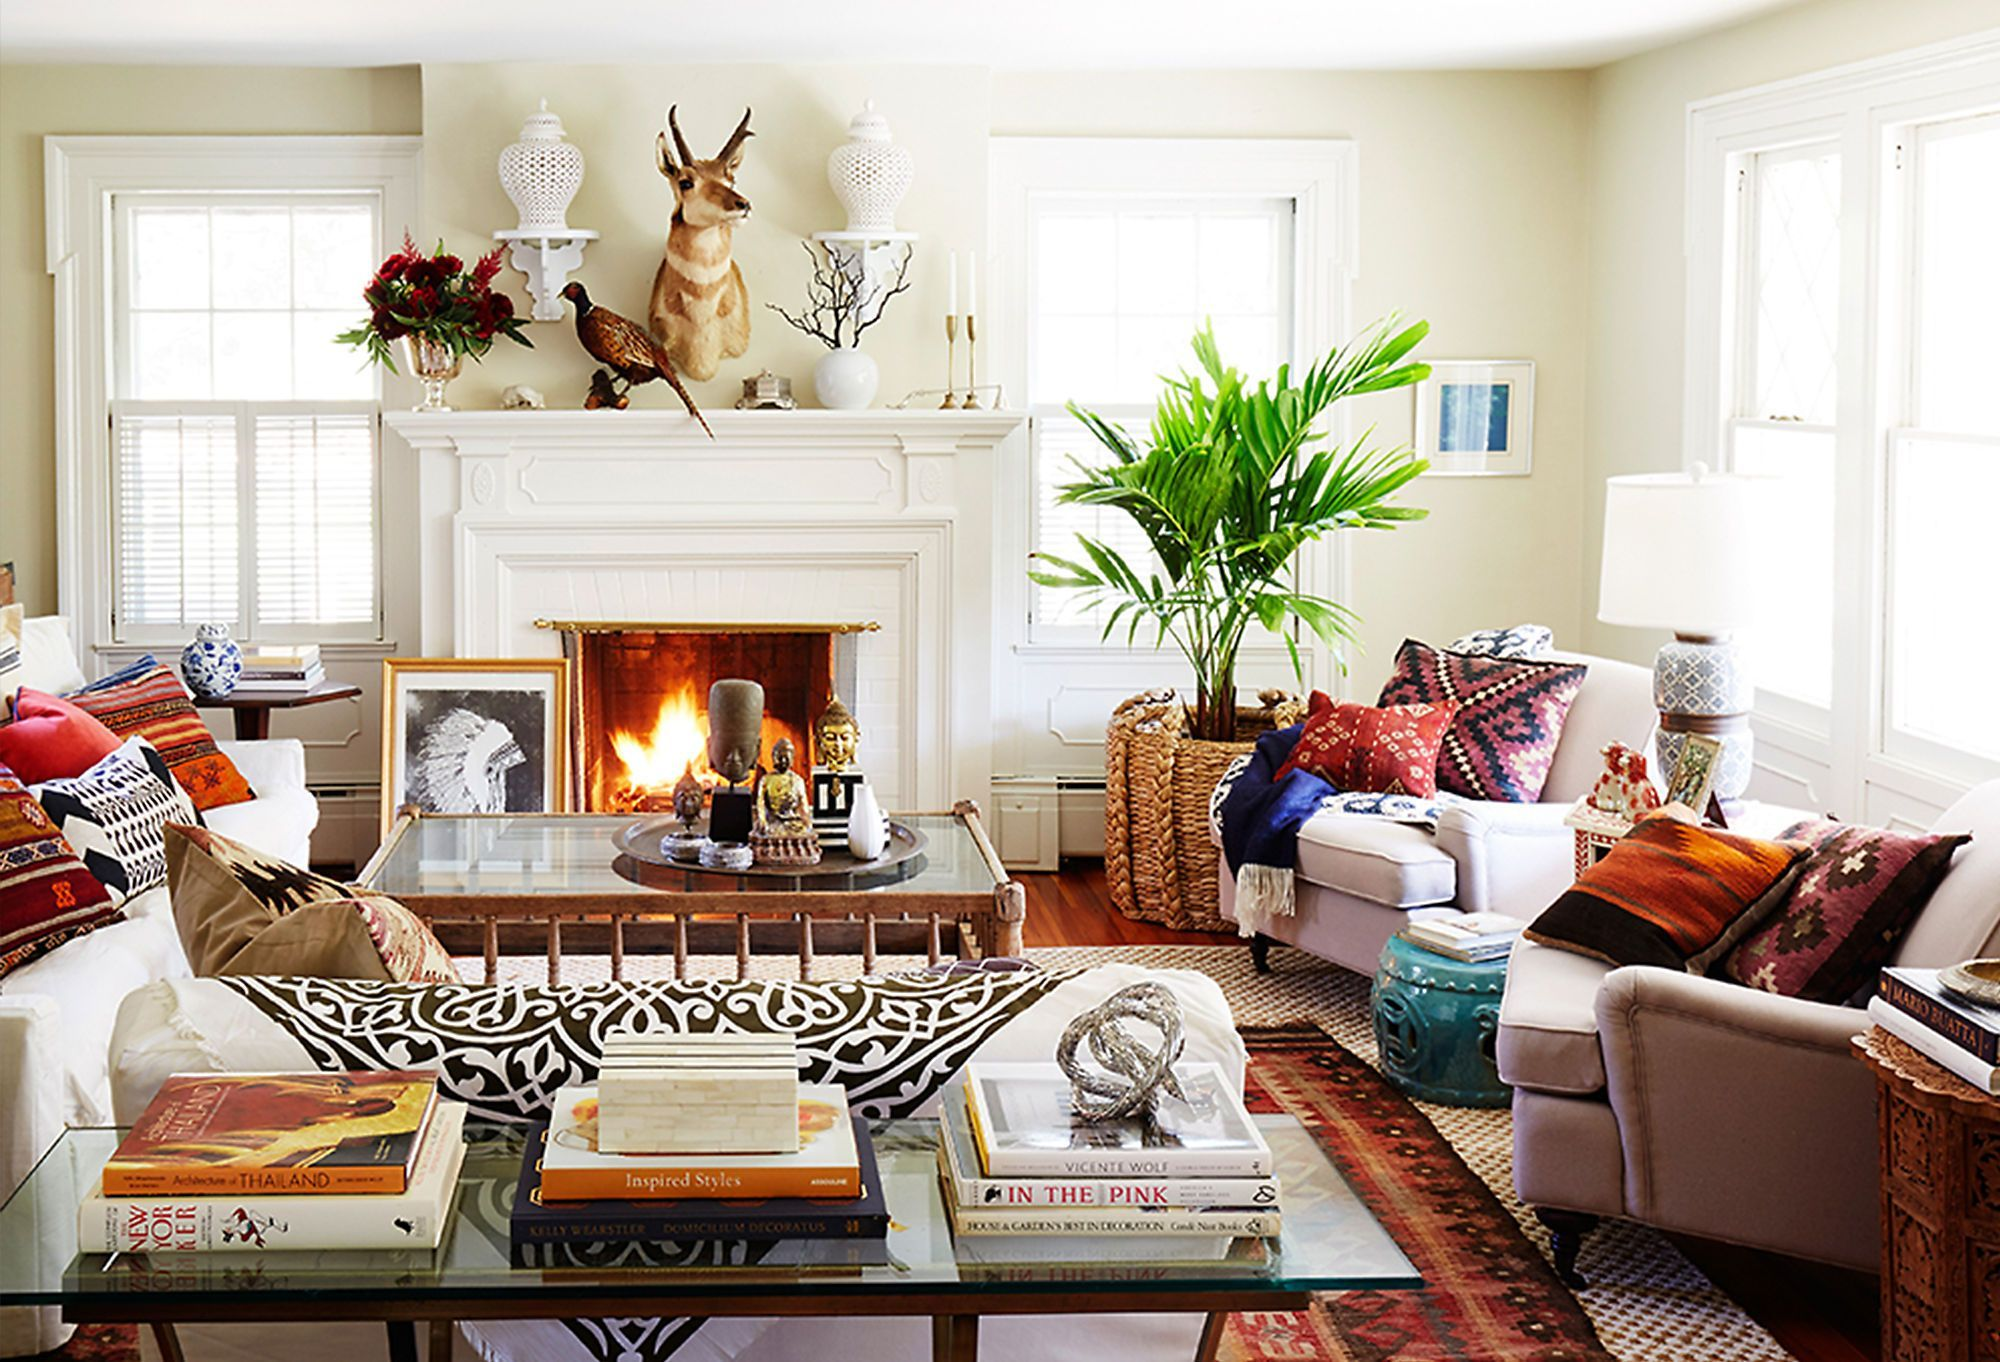 bungalow living | bungalow living rooms, home, living room